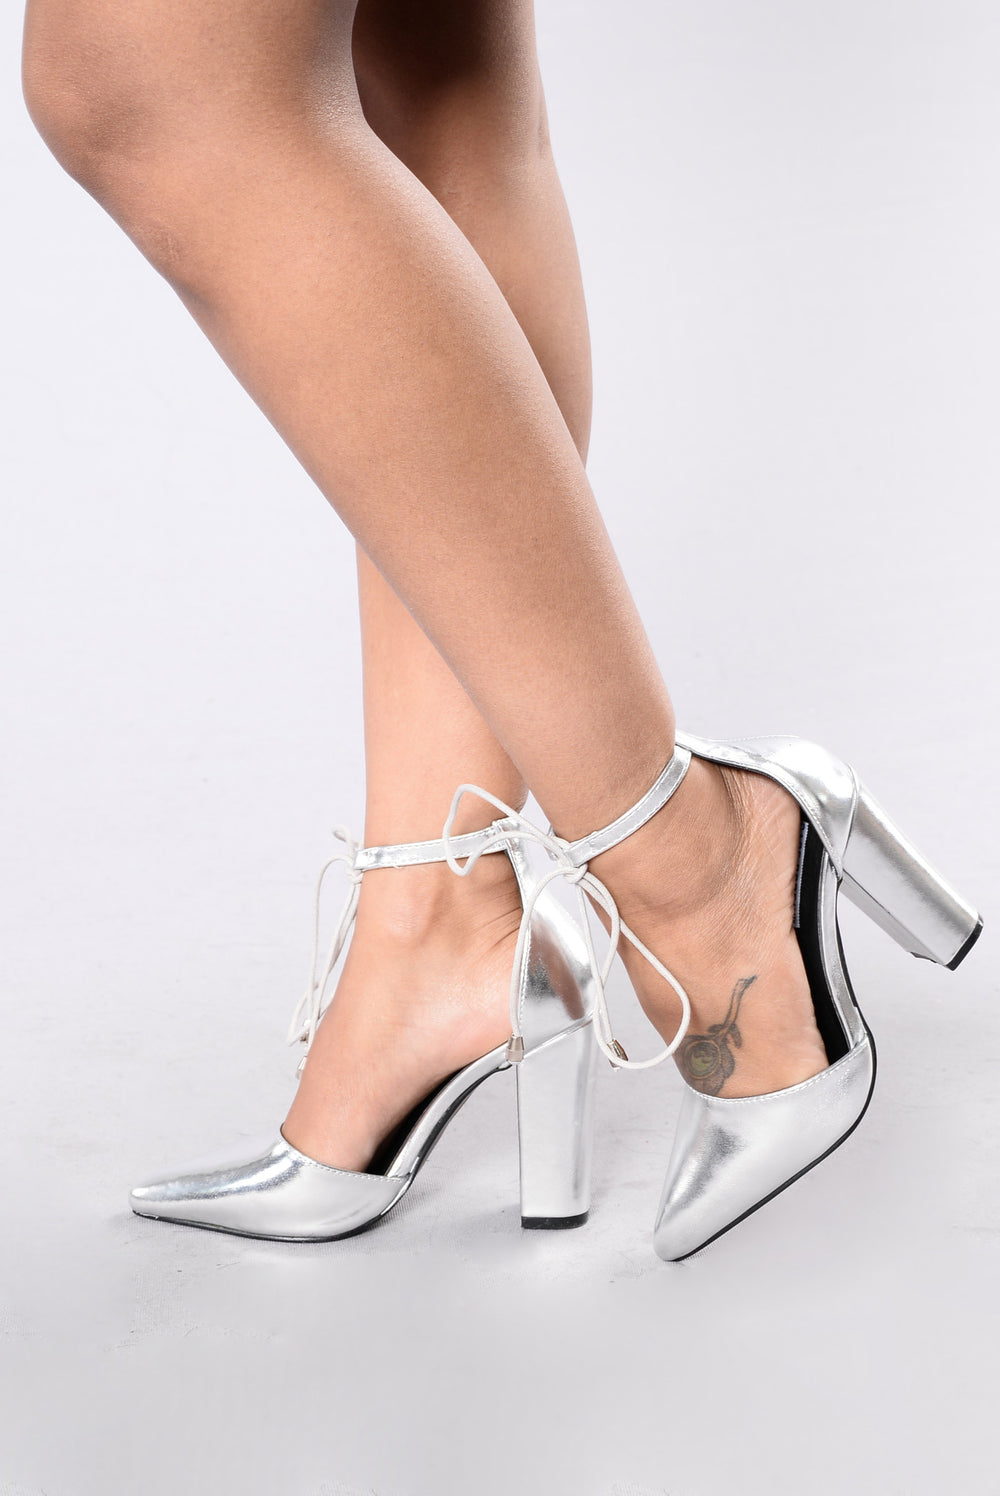 Higher Grounds Heel - Silver